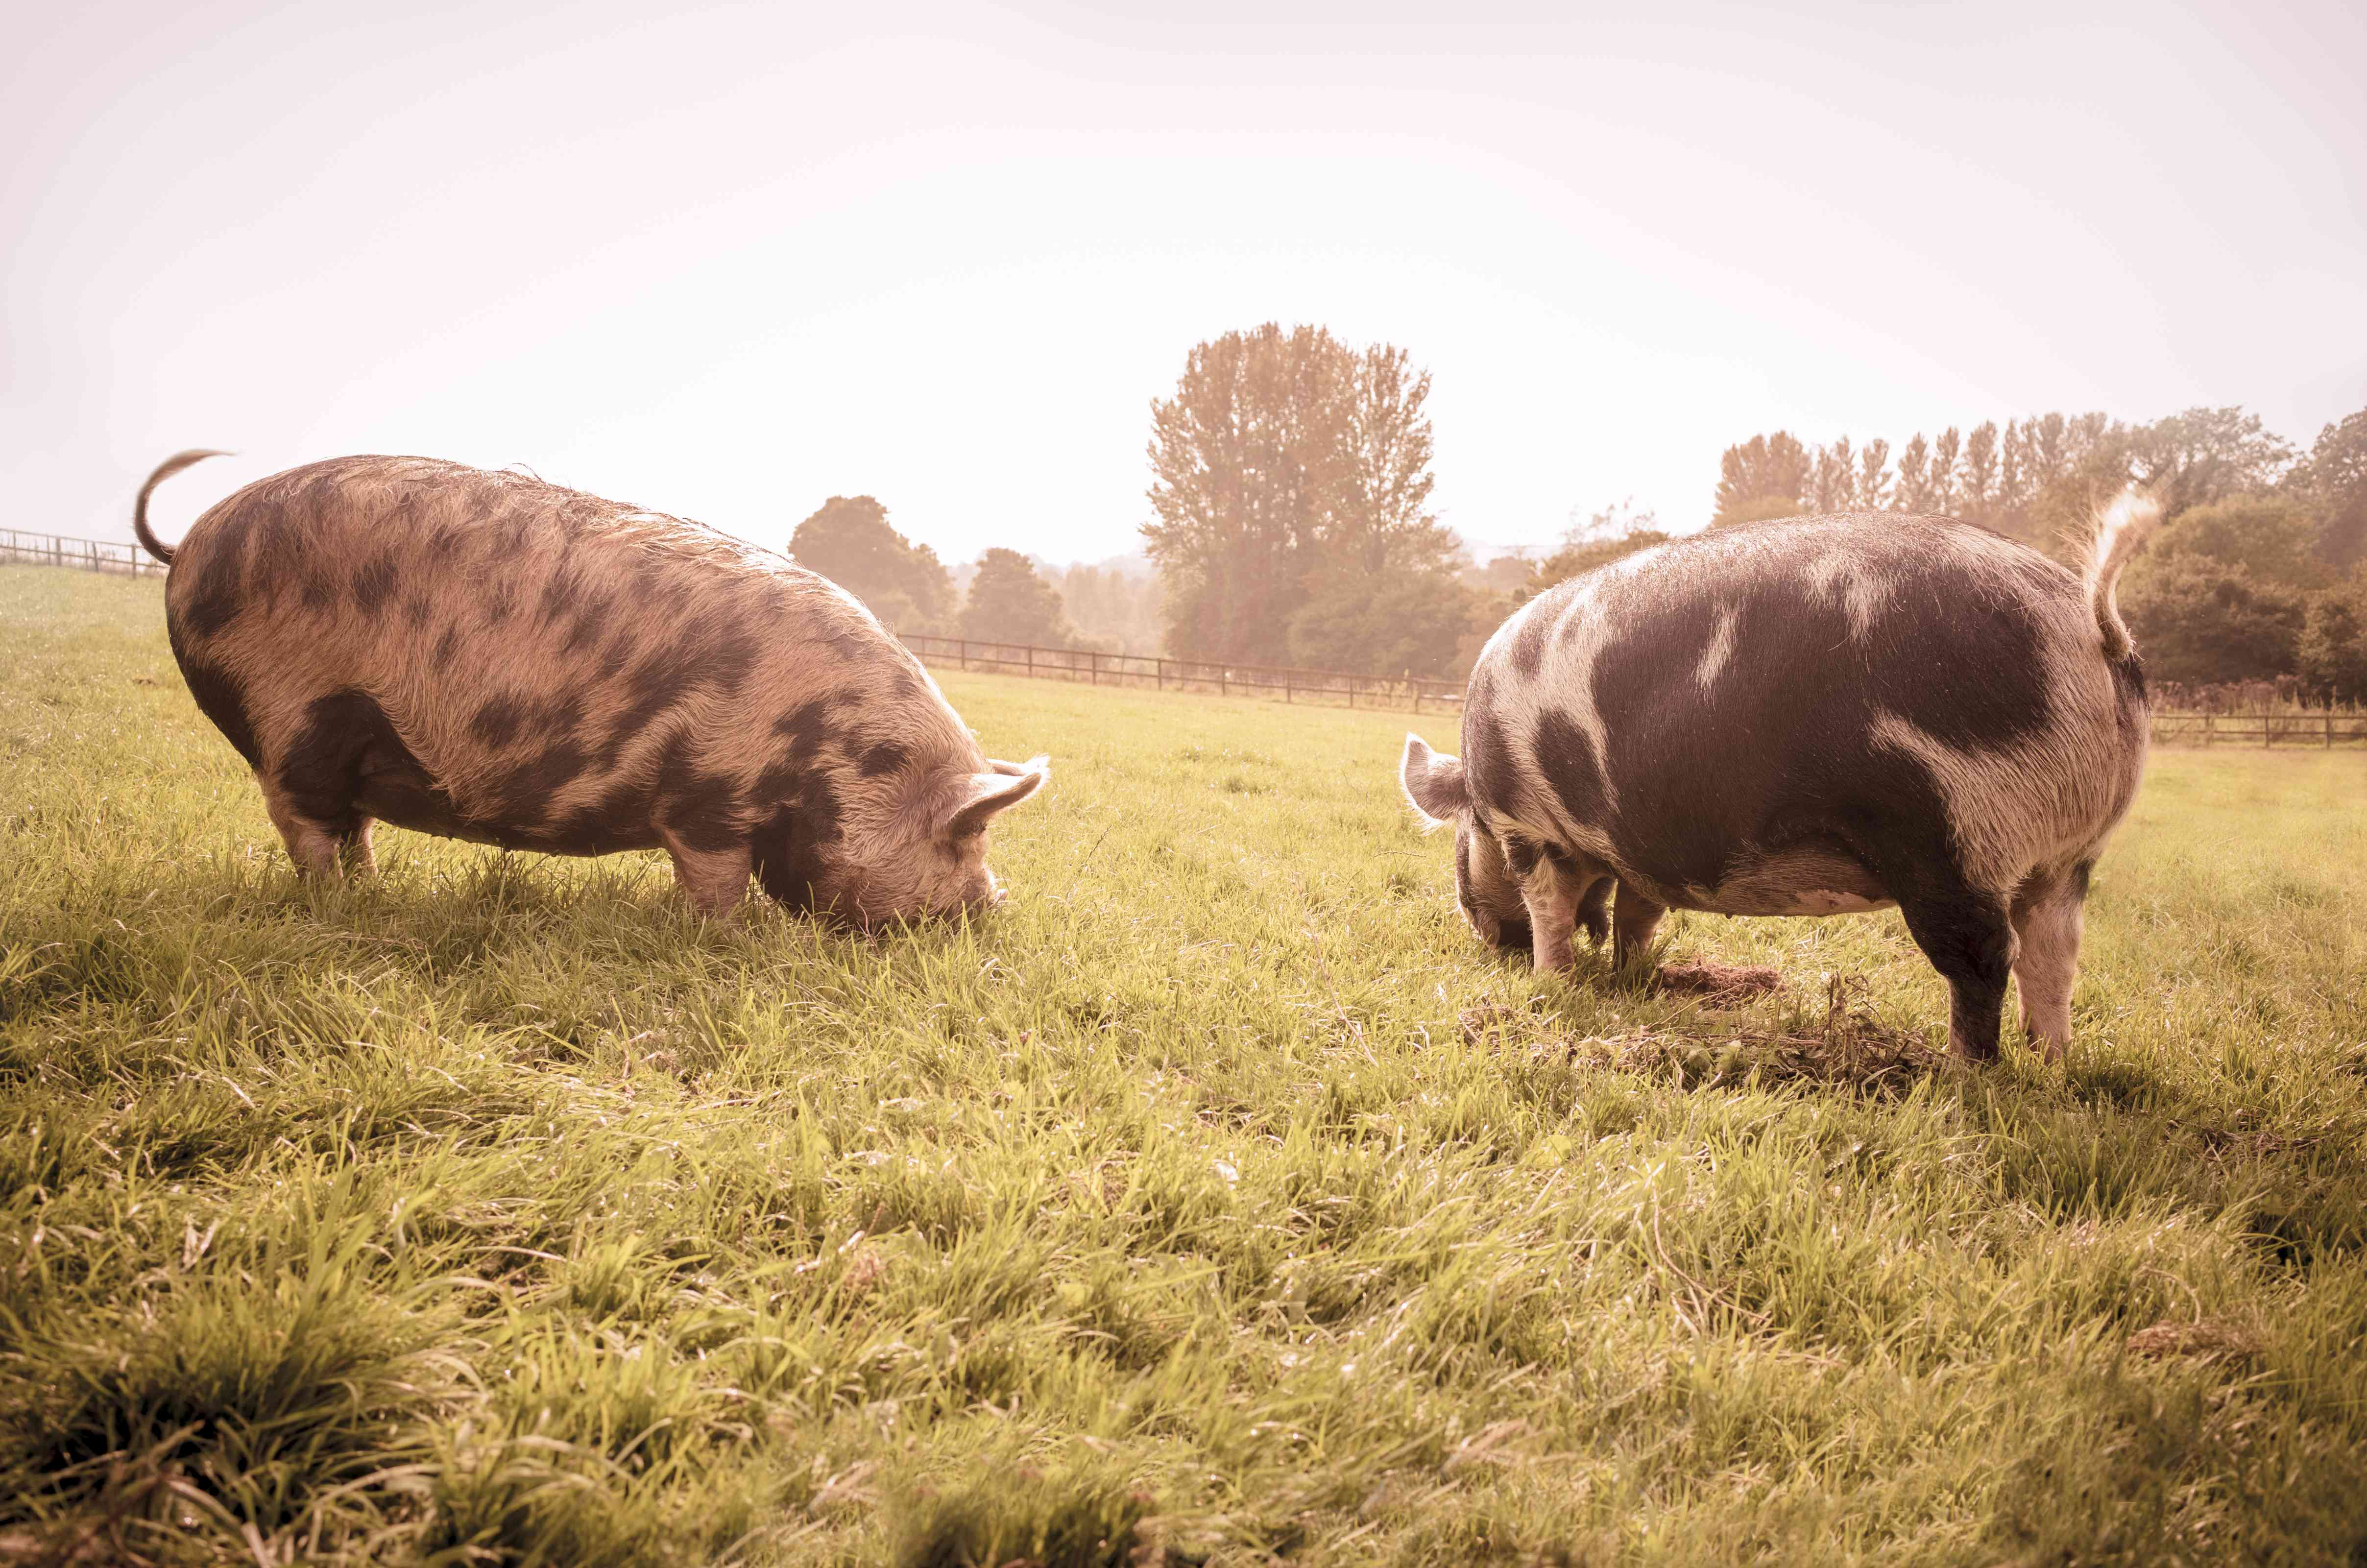 Two long-haired pigs grazing in a pasture